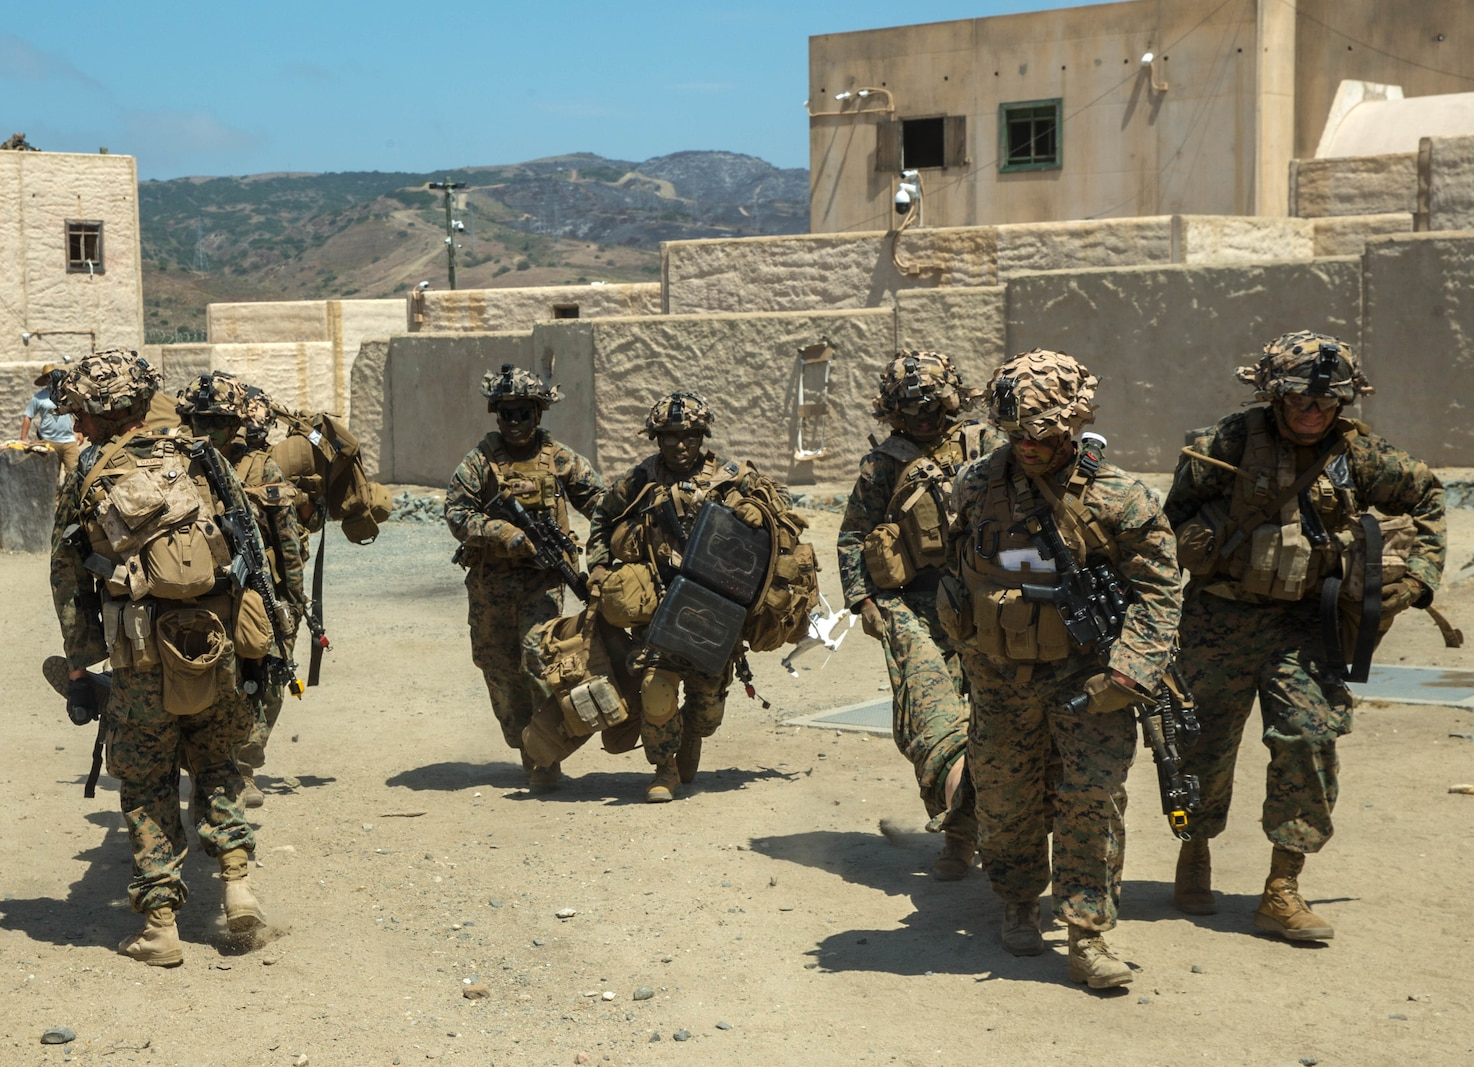 U.S. Marines with Echo Company, 2nd Battalion, 4th Marine Regiment, 1st Marine Division, carry injured Marines to the casualty collection point during Prime Time Training, at the Infantry Immersion Trainer (IIT) facility, Marine Corps Base Camp Pendleton, Calif., July 23, 2017.